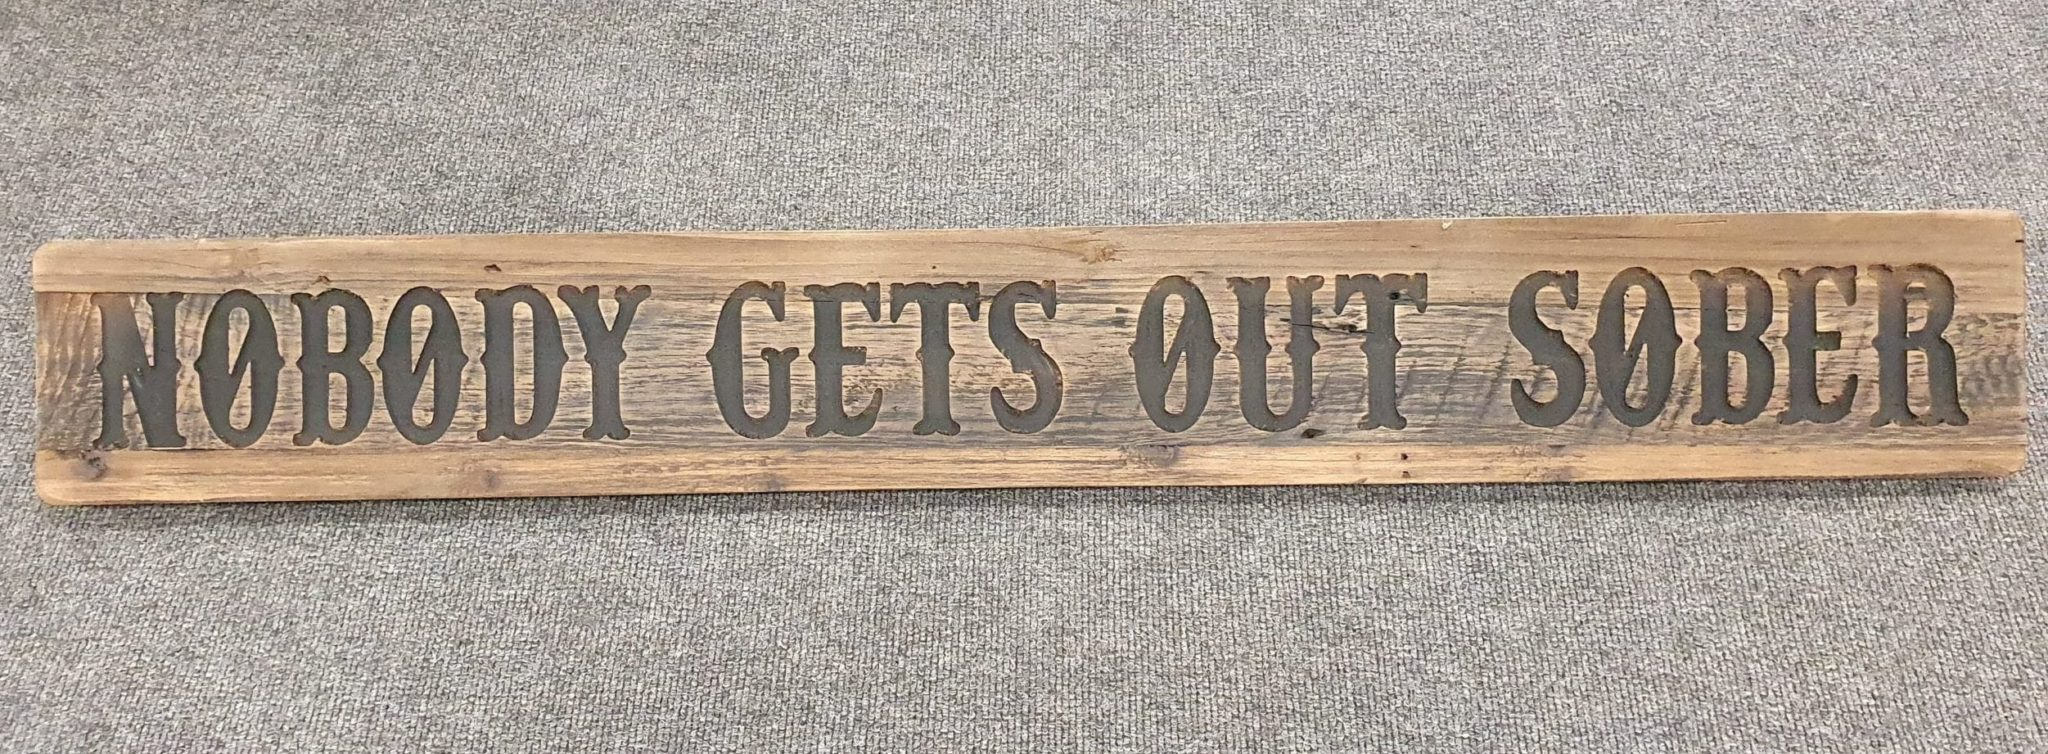 A Rustic Wooden Plaque quoting Nobody Gets out Sober, engraved in capital letters